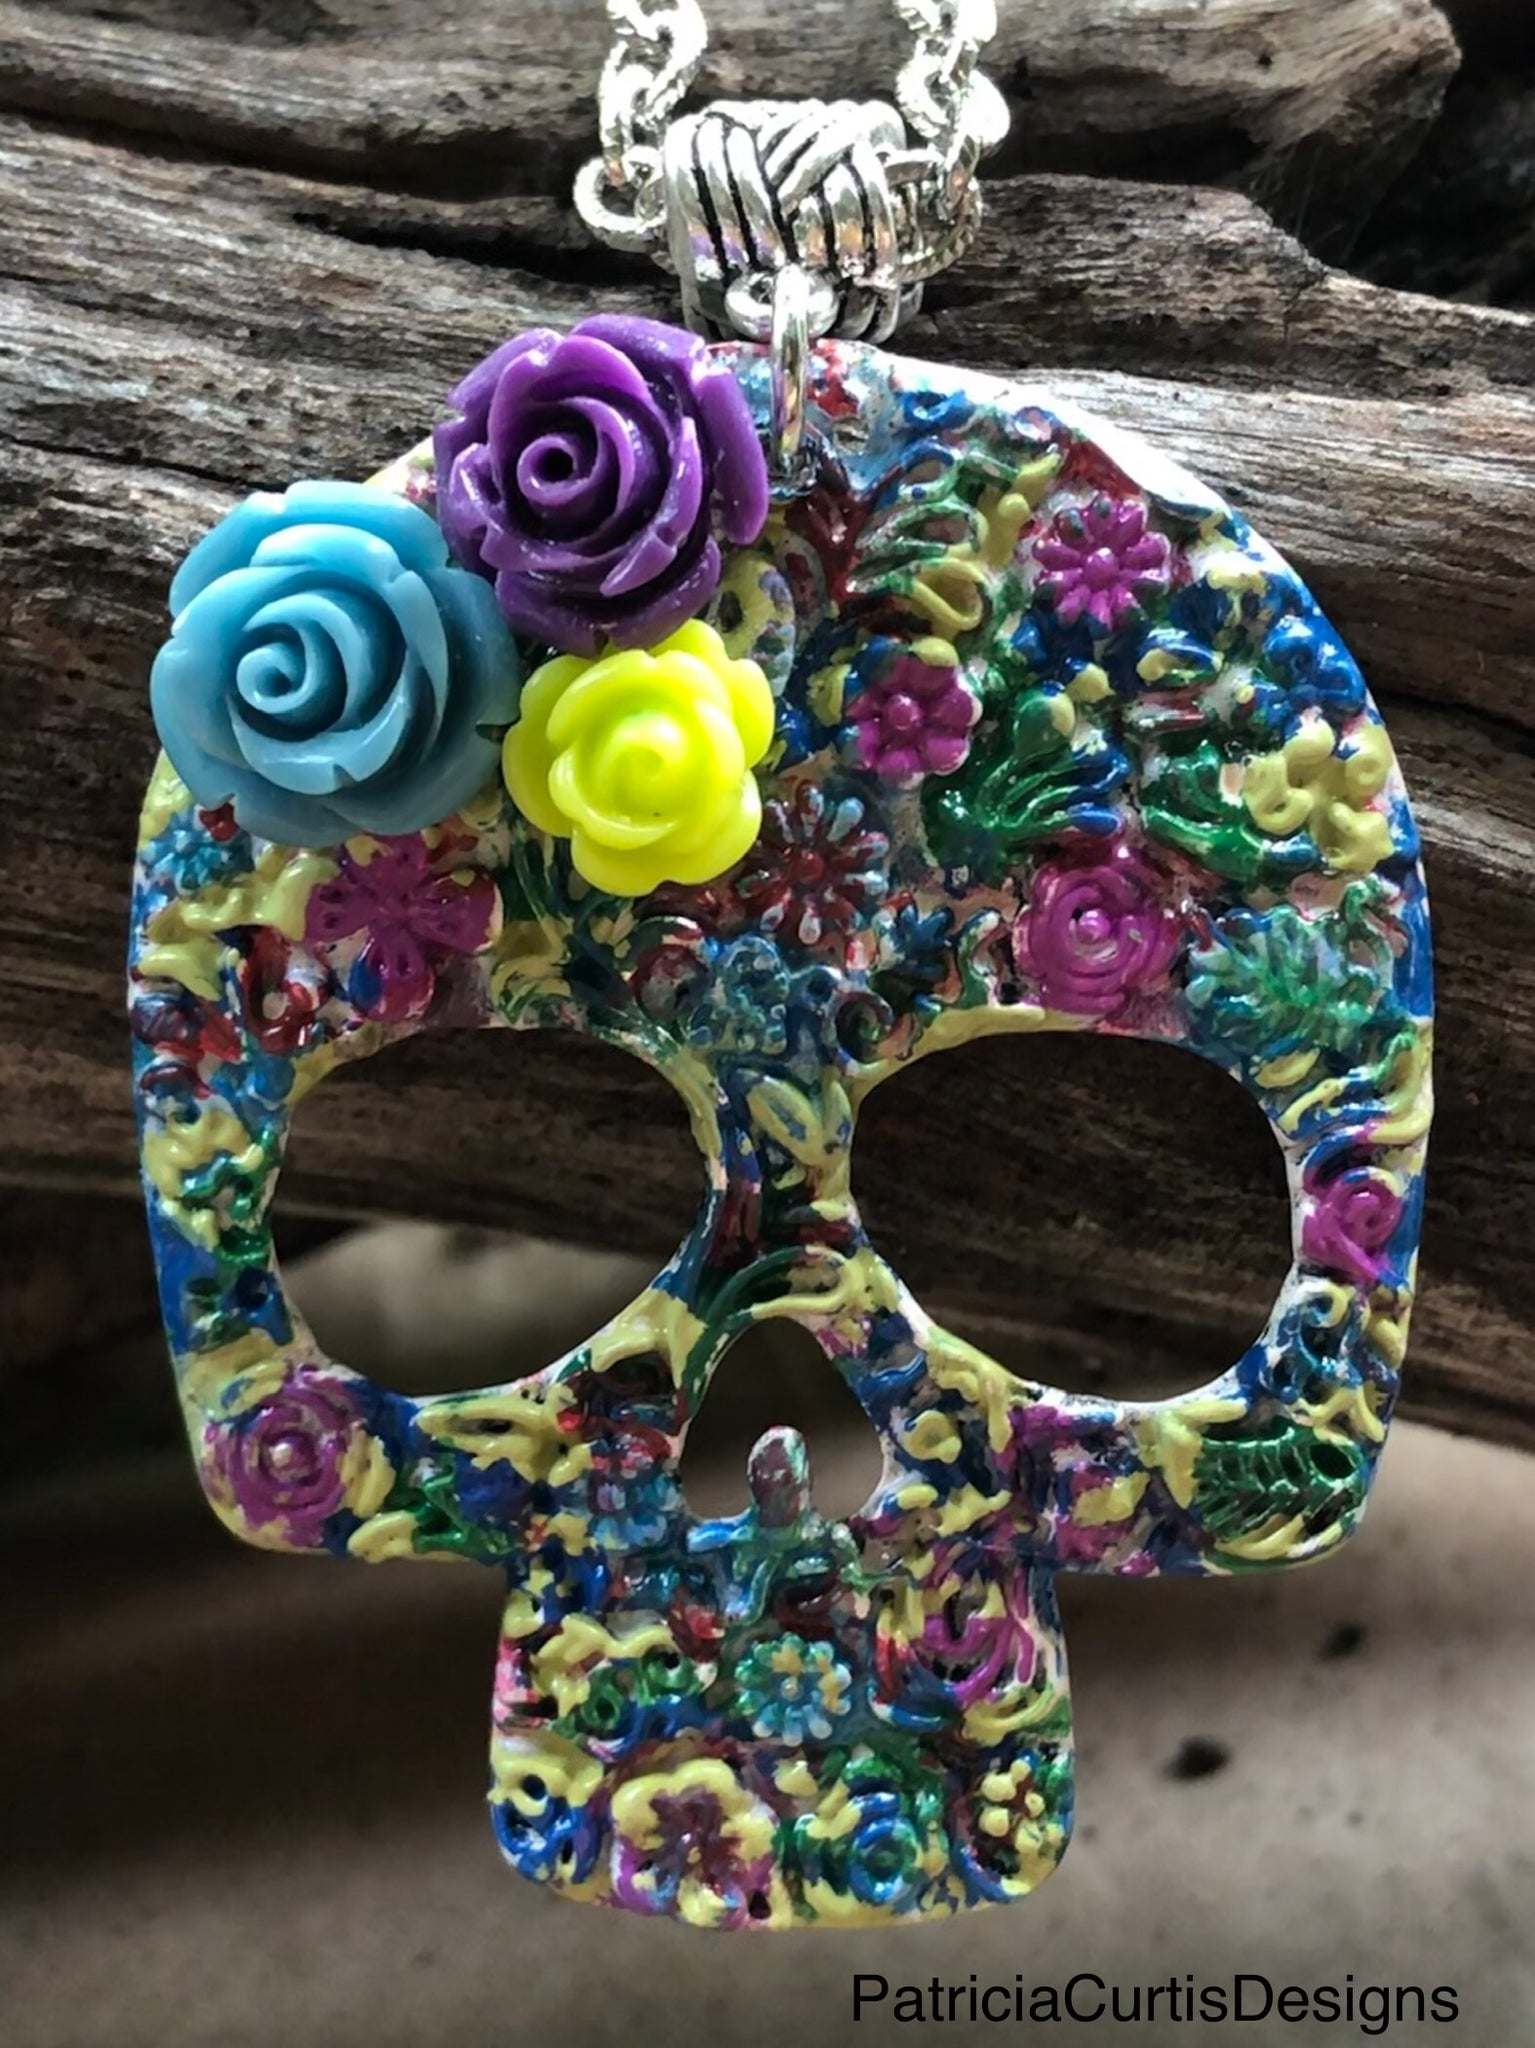 Sugar Skull Hand-Painted Necklace One of a Kind